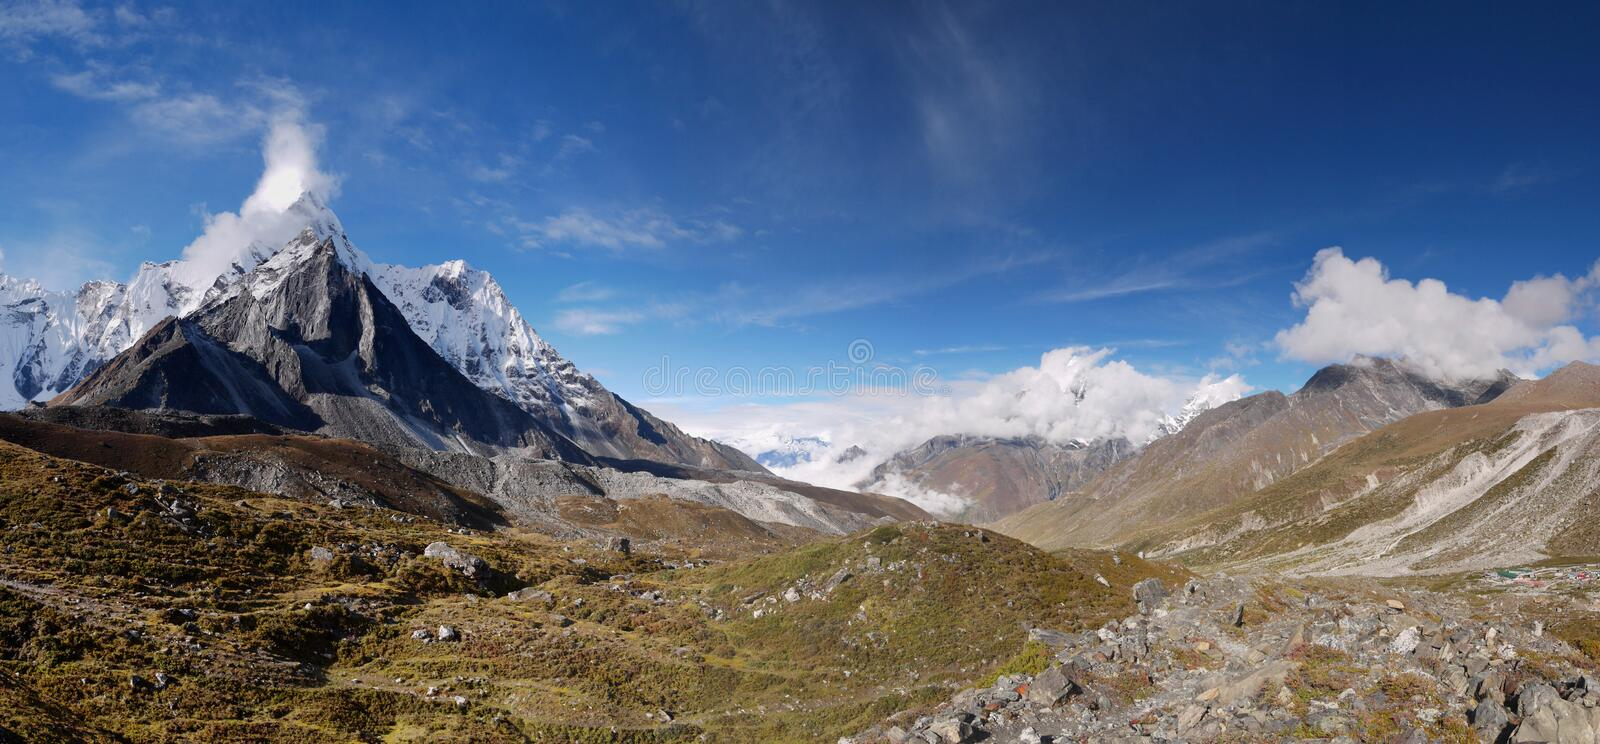 Himalayas, Nepal, Expedition, Mt Ama Dablam, Panorama royalty free stock photography